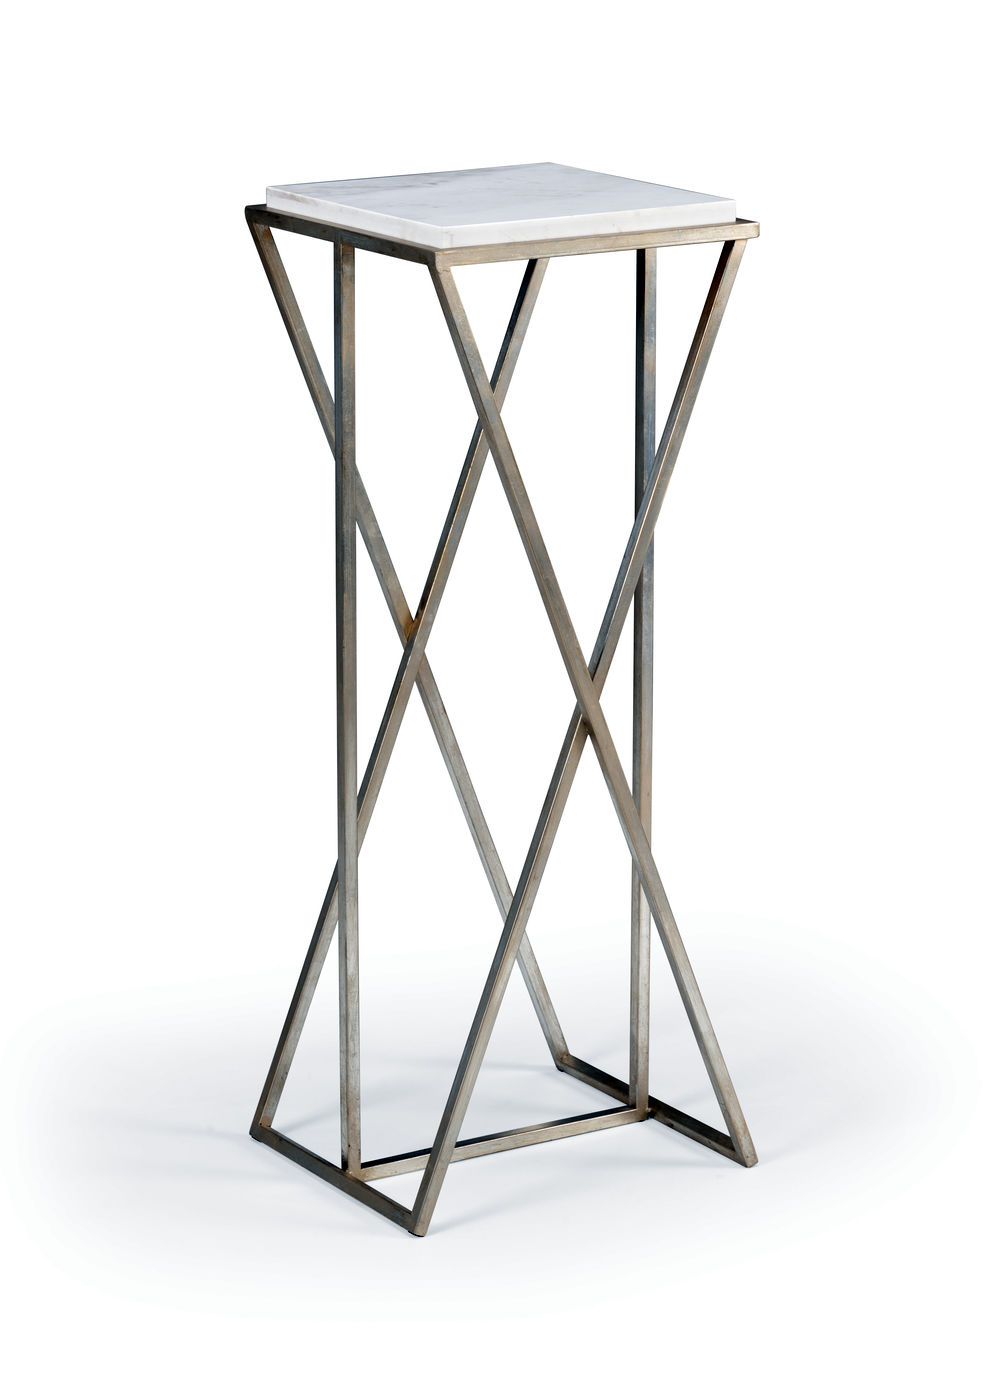 490207 Wildwood Marble Natural White Malcolm Pedestal - Silver